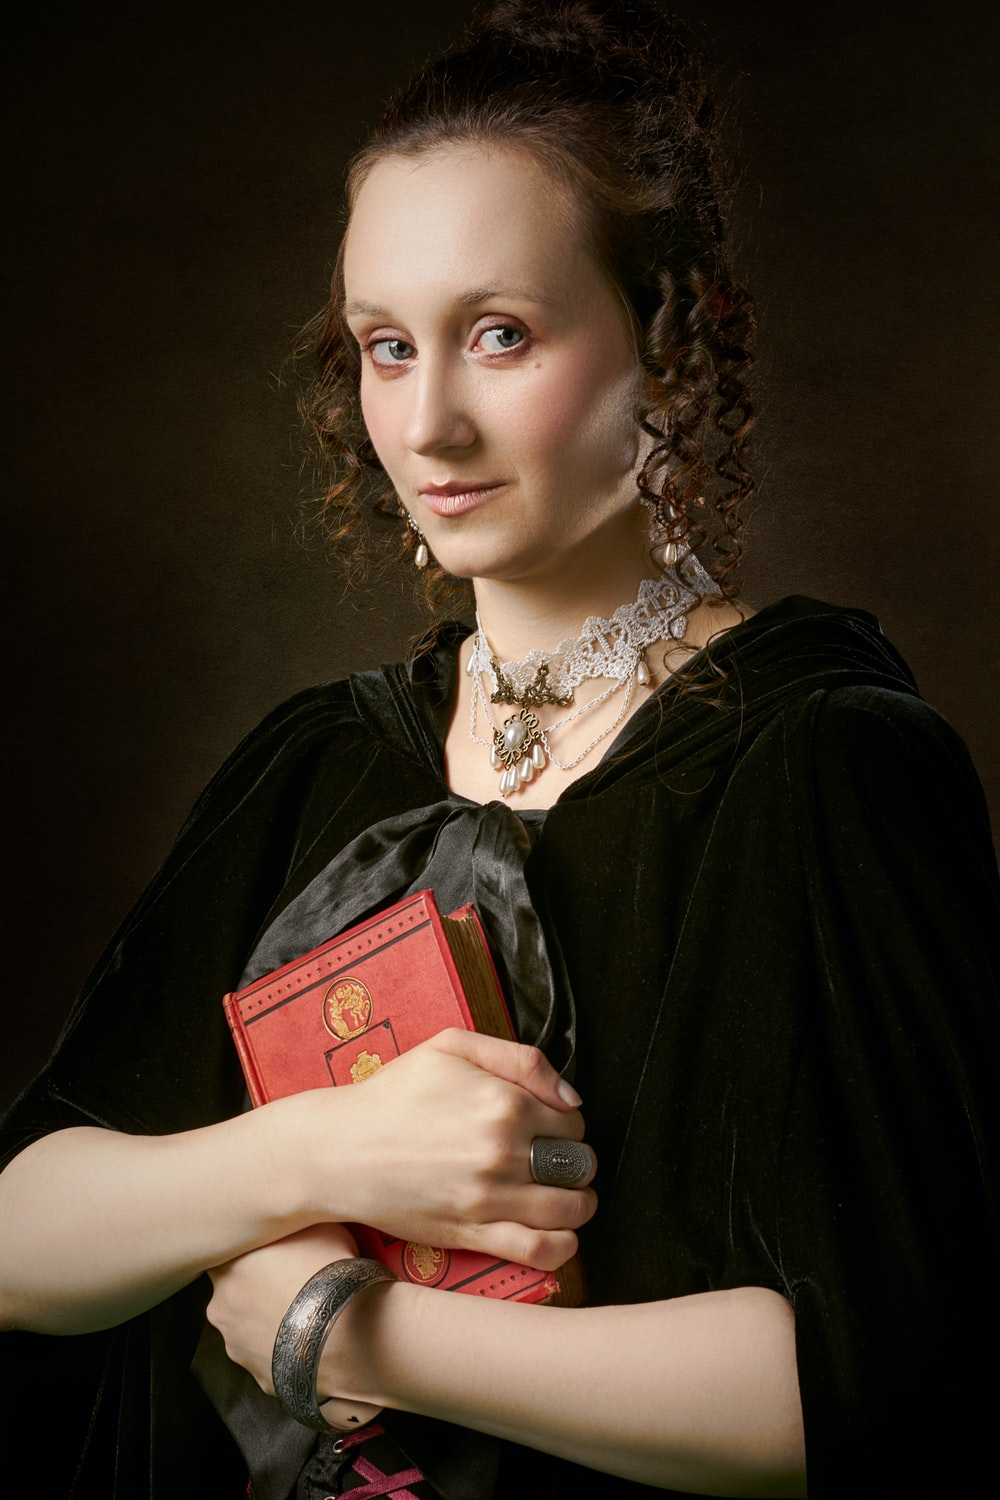 woman in black dress holding red book